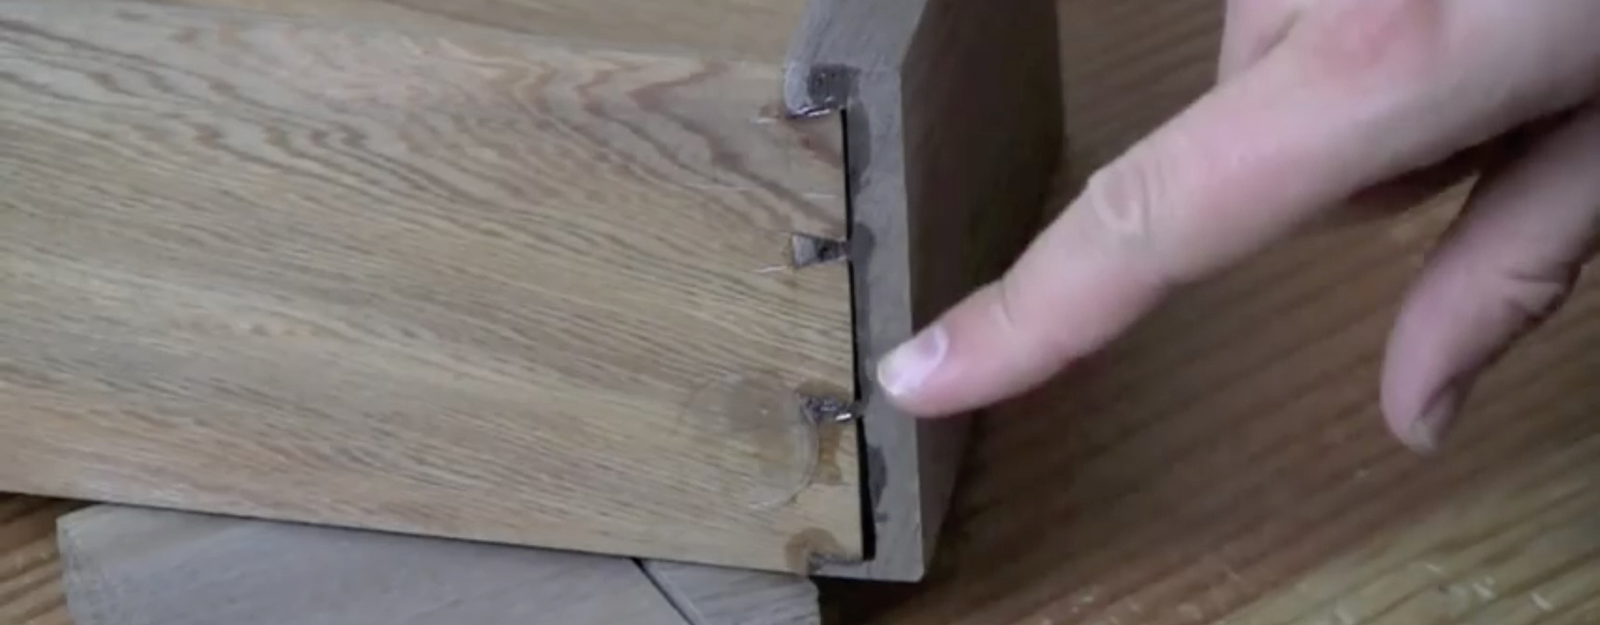 Hand Tool School #36: How to Fix Gaps in Your Dovetails - Core77